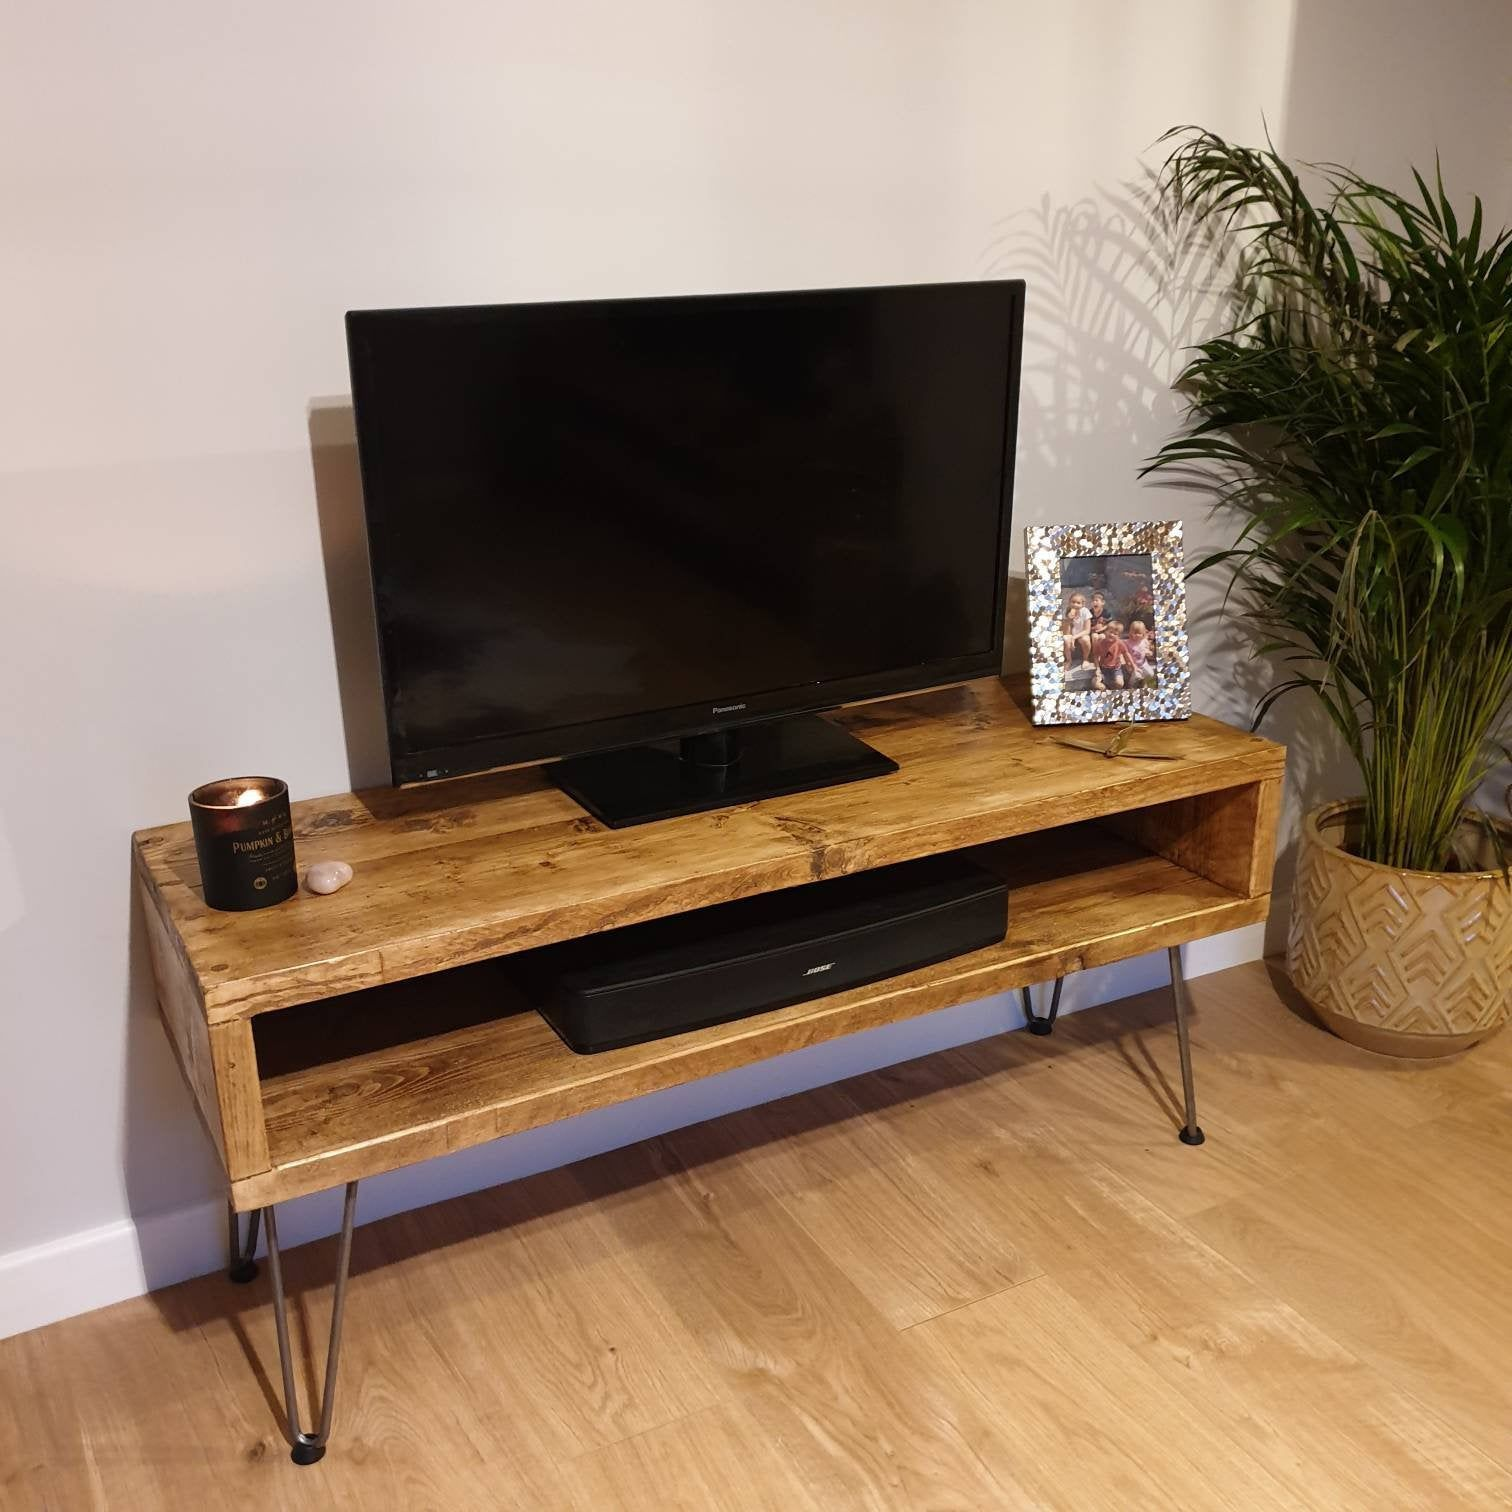 Tv Board Industrial Tv Unit Retro Berkshire- Industrial Tv Unit / Reclaimed Wood / Retro Media Console Box / Metal Hairpin Legs | Reclaimed Wood Tv Stand, Wood Tv Unit, Tv Unit